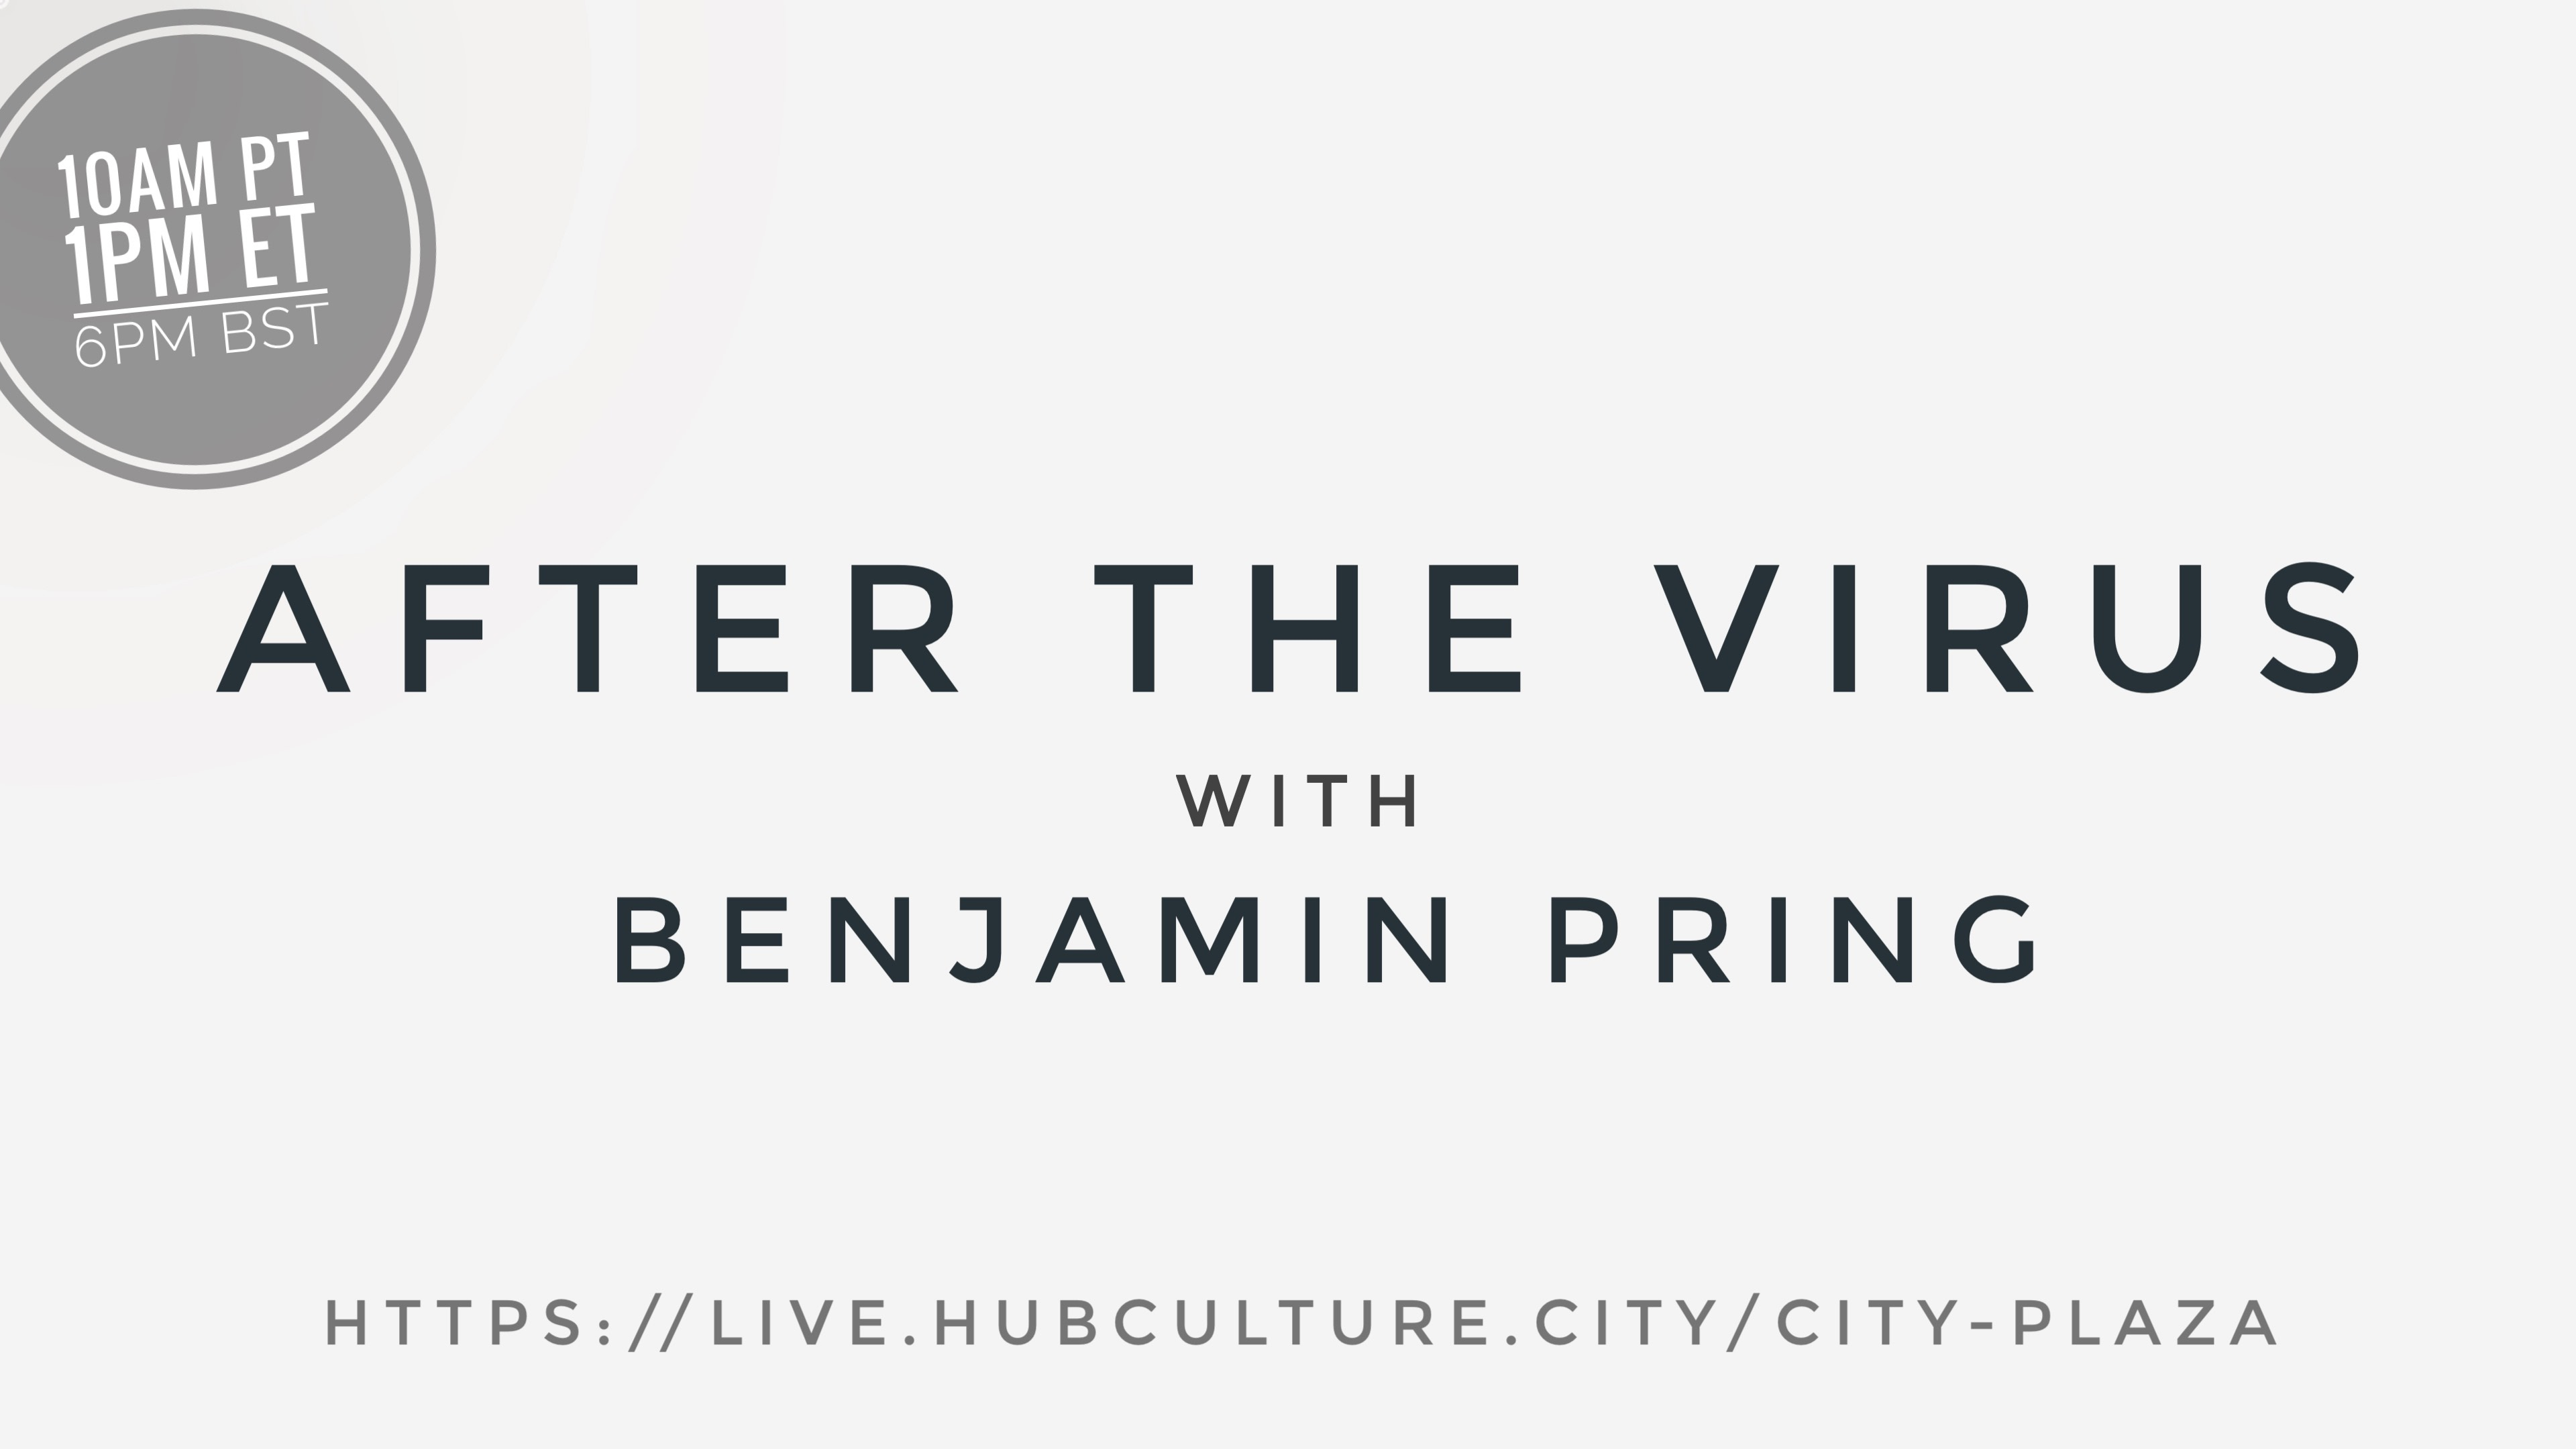 After the Virus with Benjamin Pring